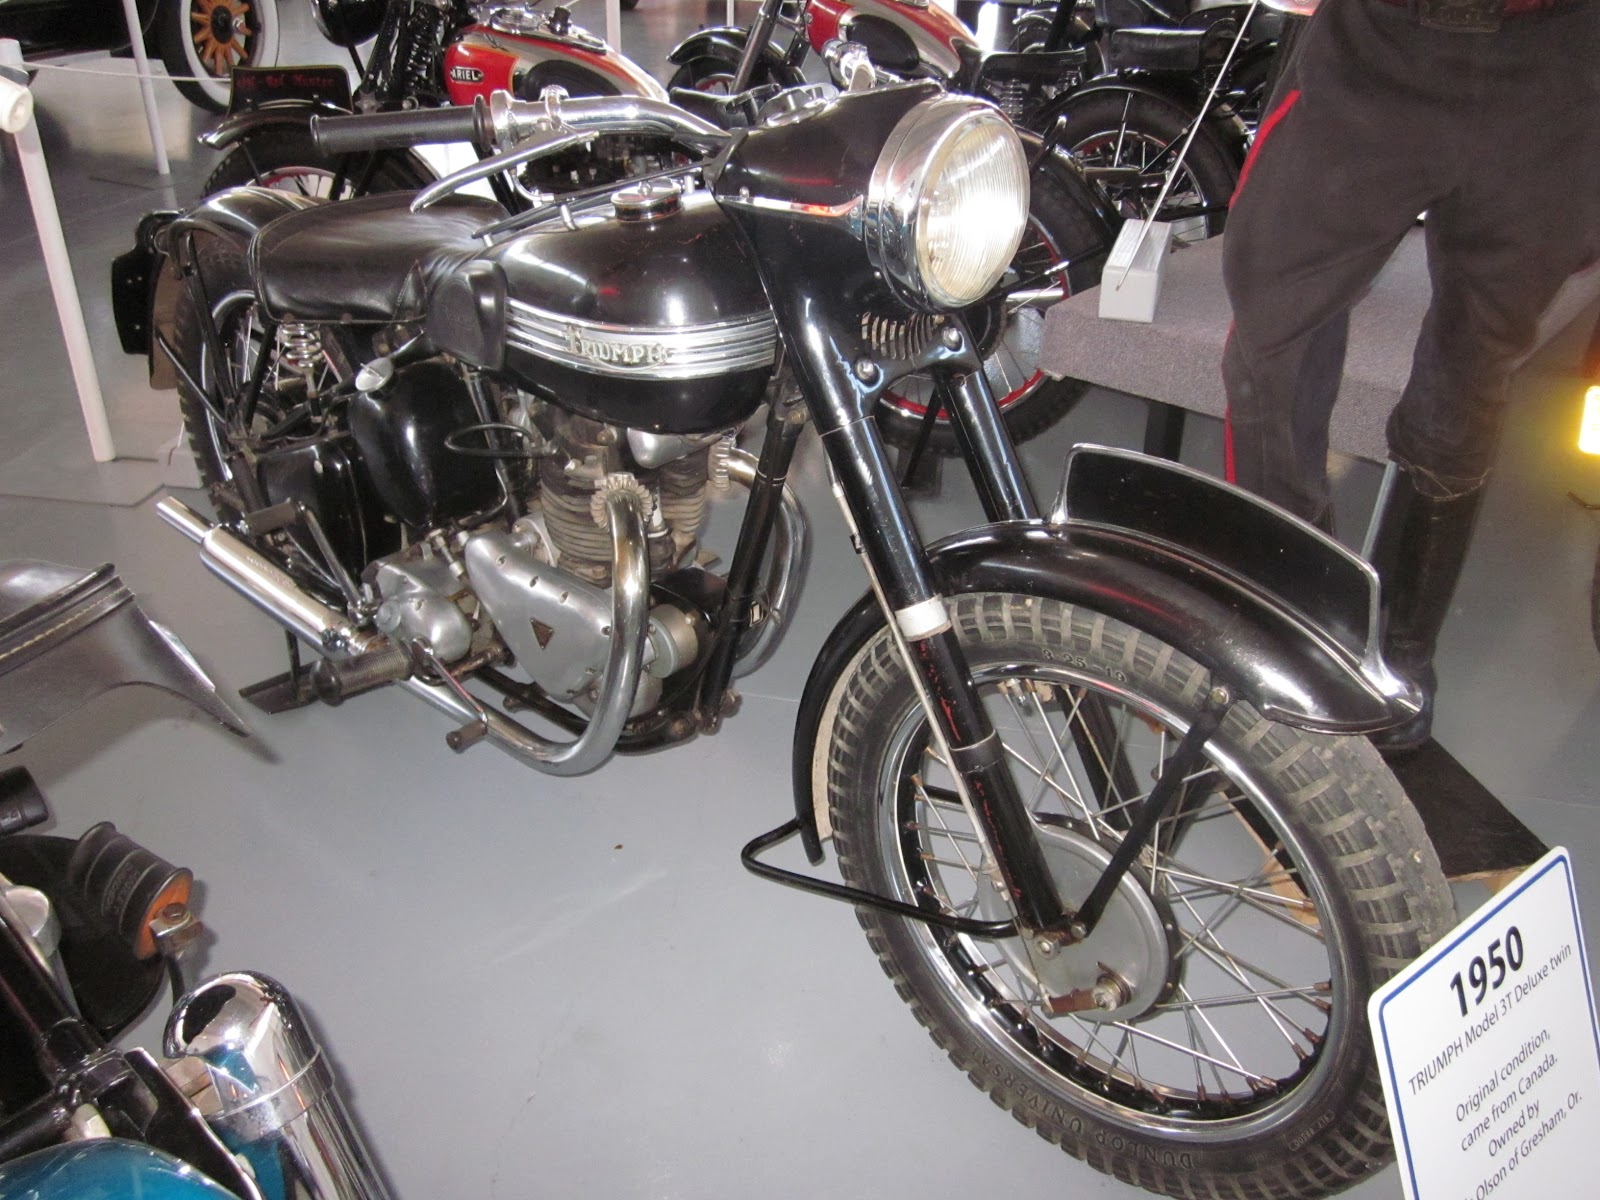 Vintage Motorcycles Northwest 56